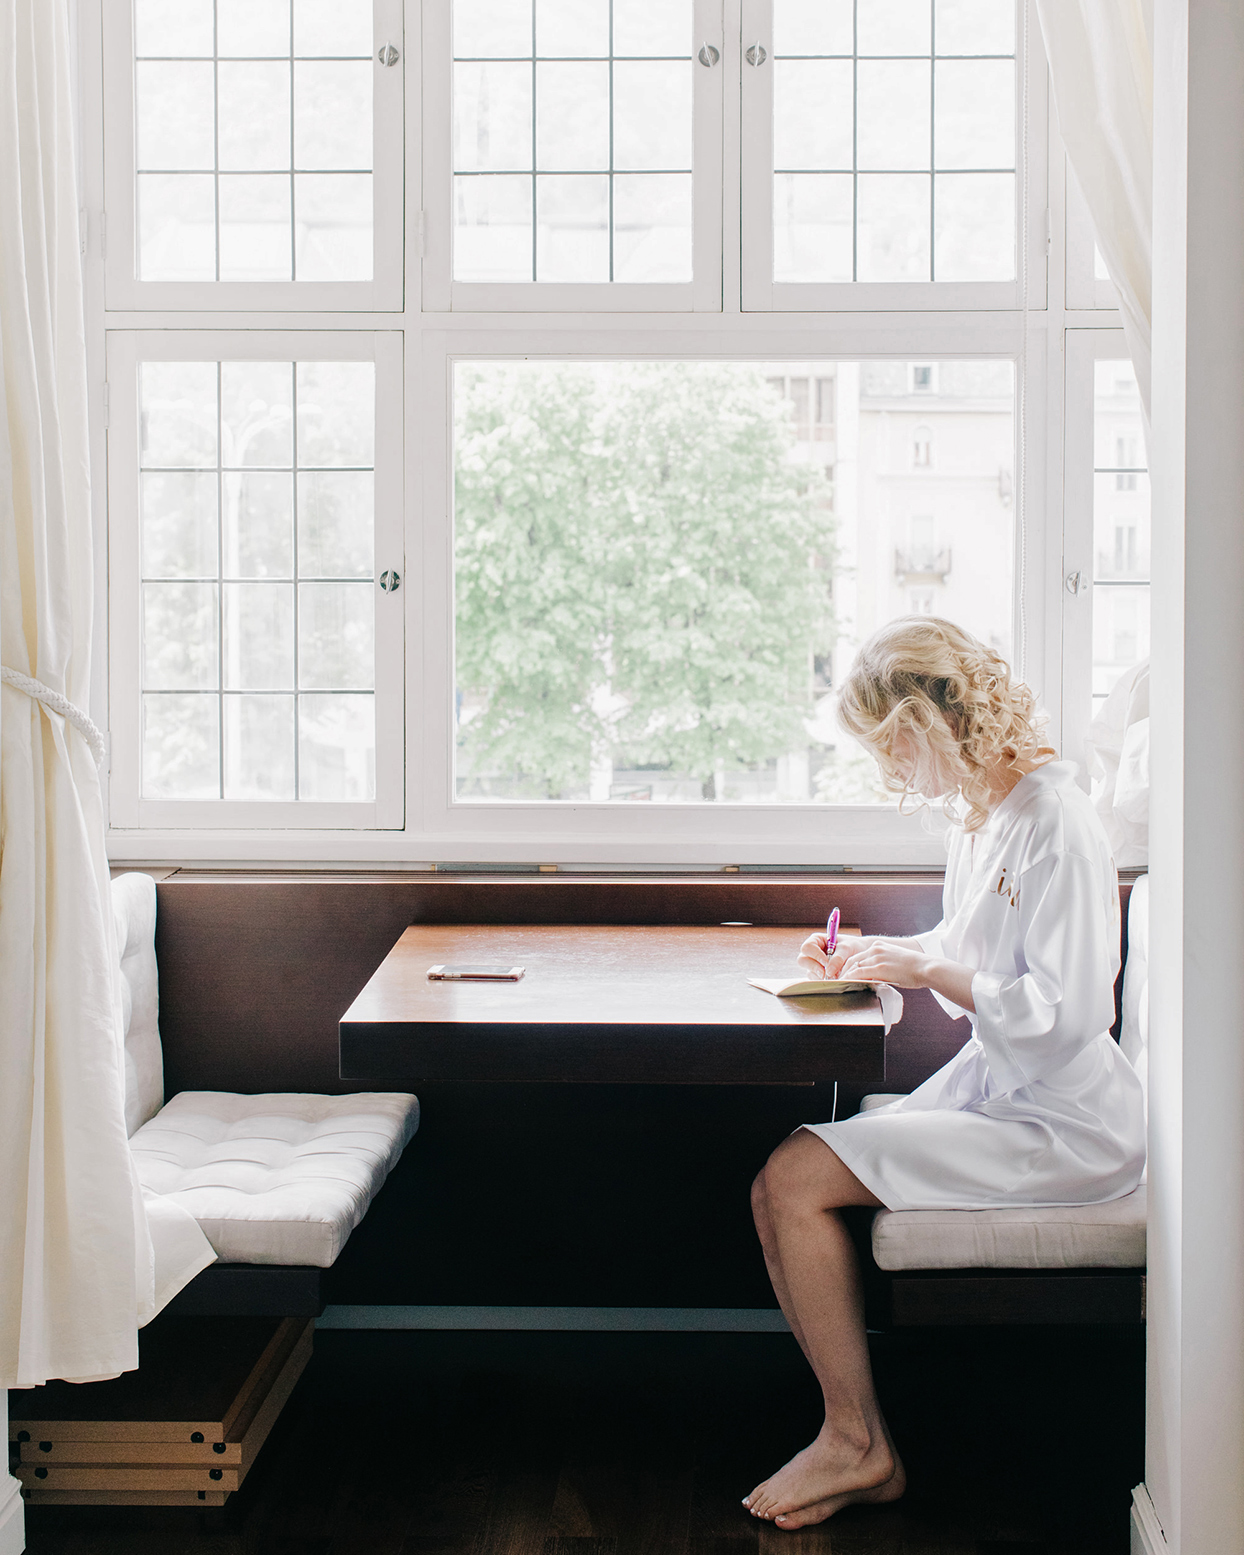 kiira arthur wedding bride writing vows by window